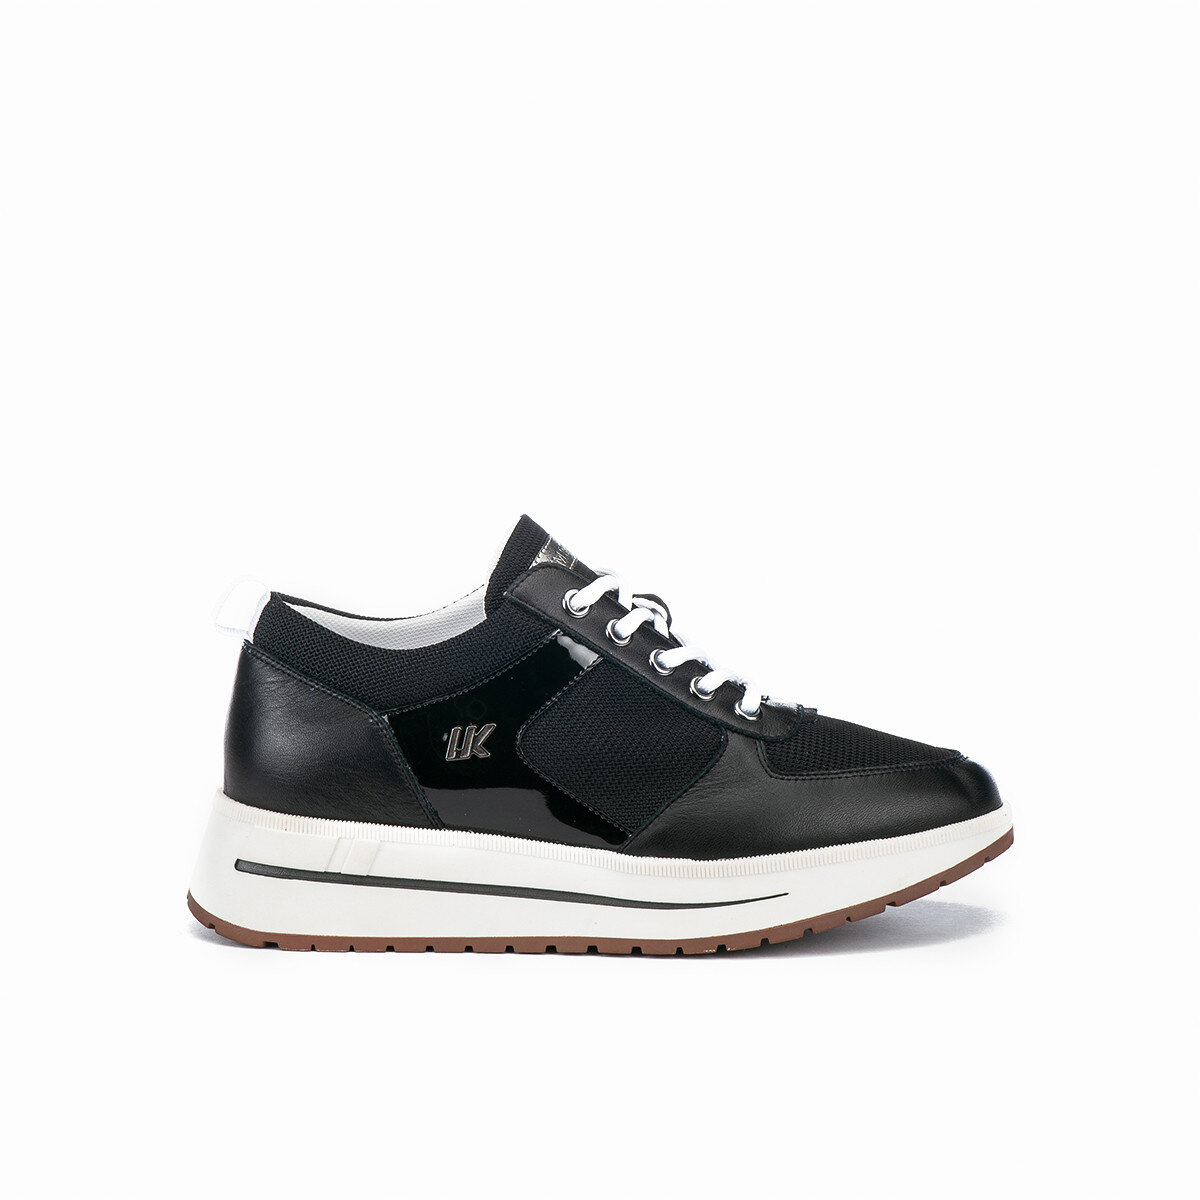 GABRIELLE Sneakers Donna